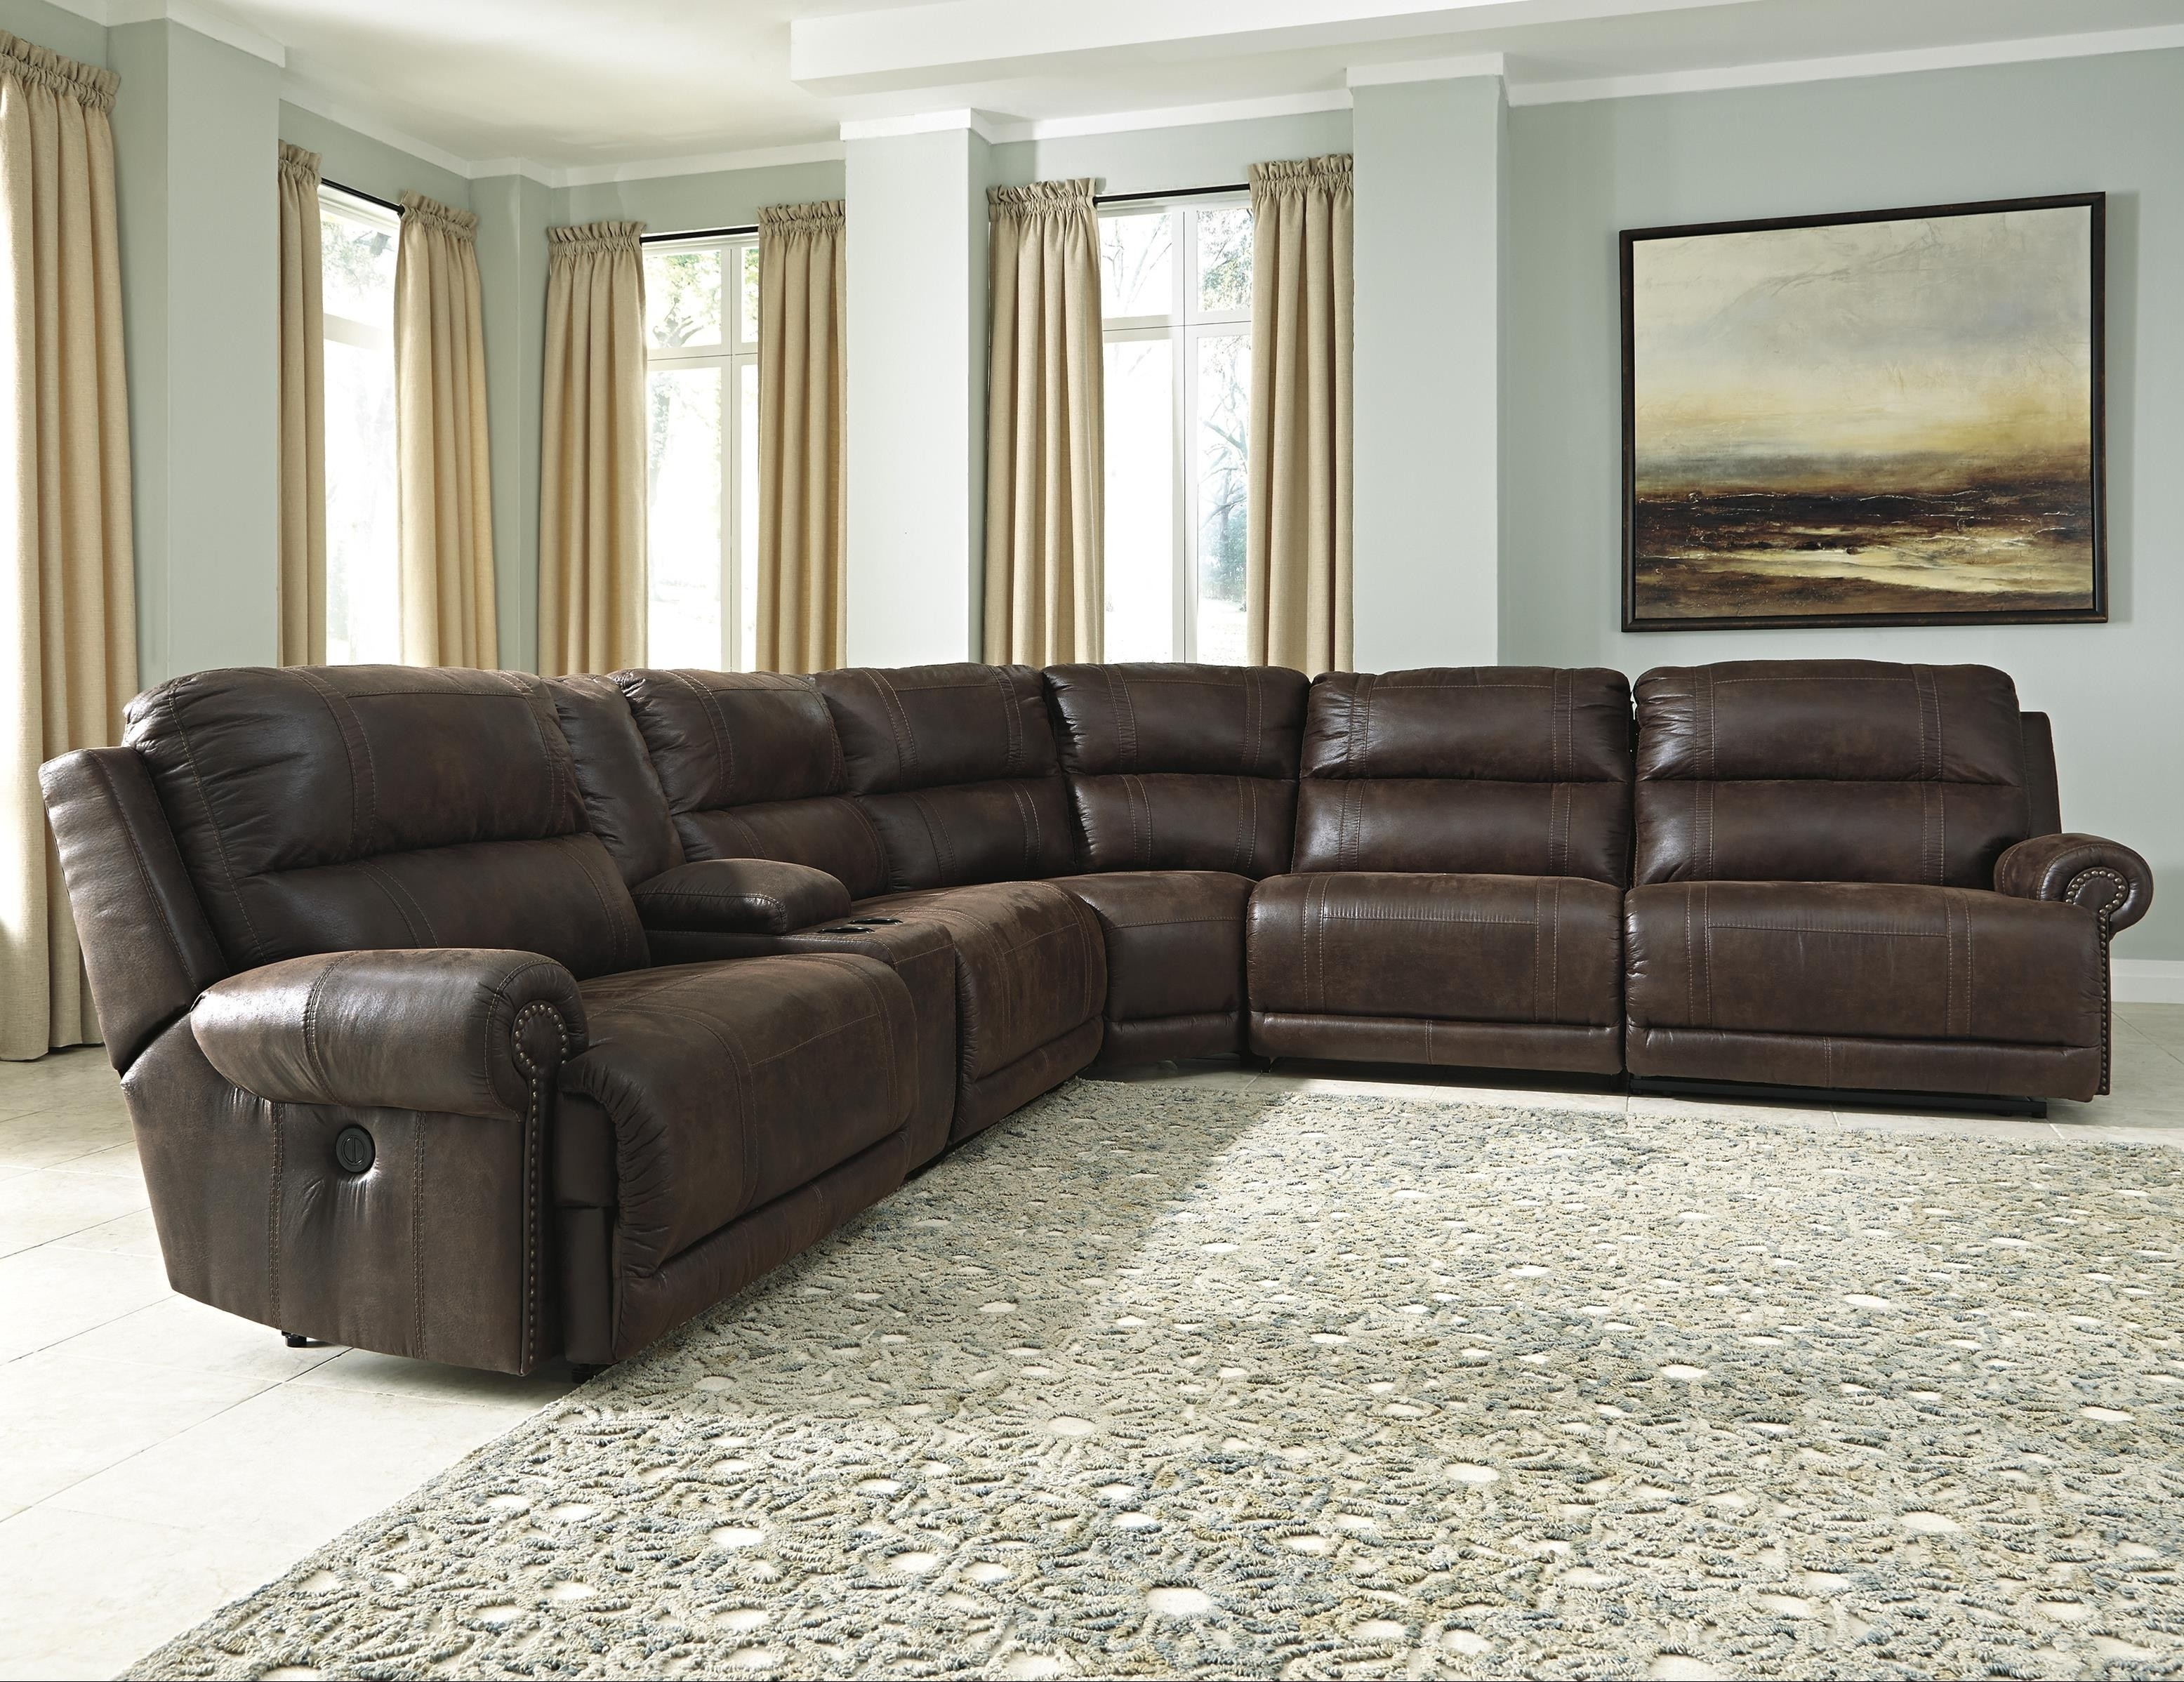 6 Piece Sectional Sofa Marcus Grey W Power Headrest Usb Living With Marcus Grey 6 Piece Sectionals With  Power Headrest & Usb (Image 7 of 25)